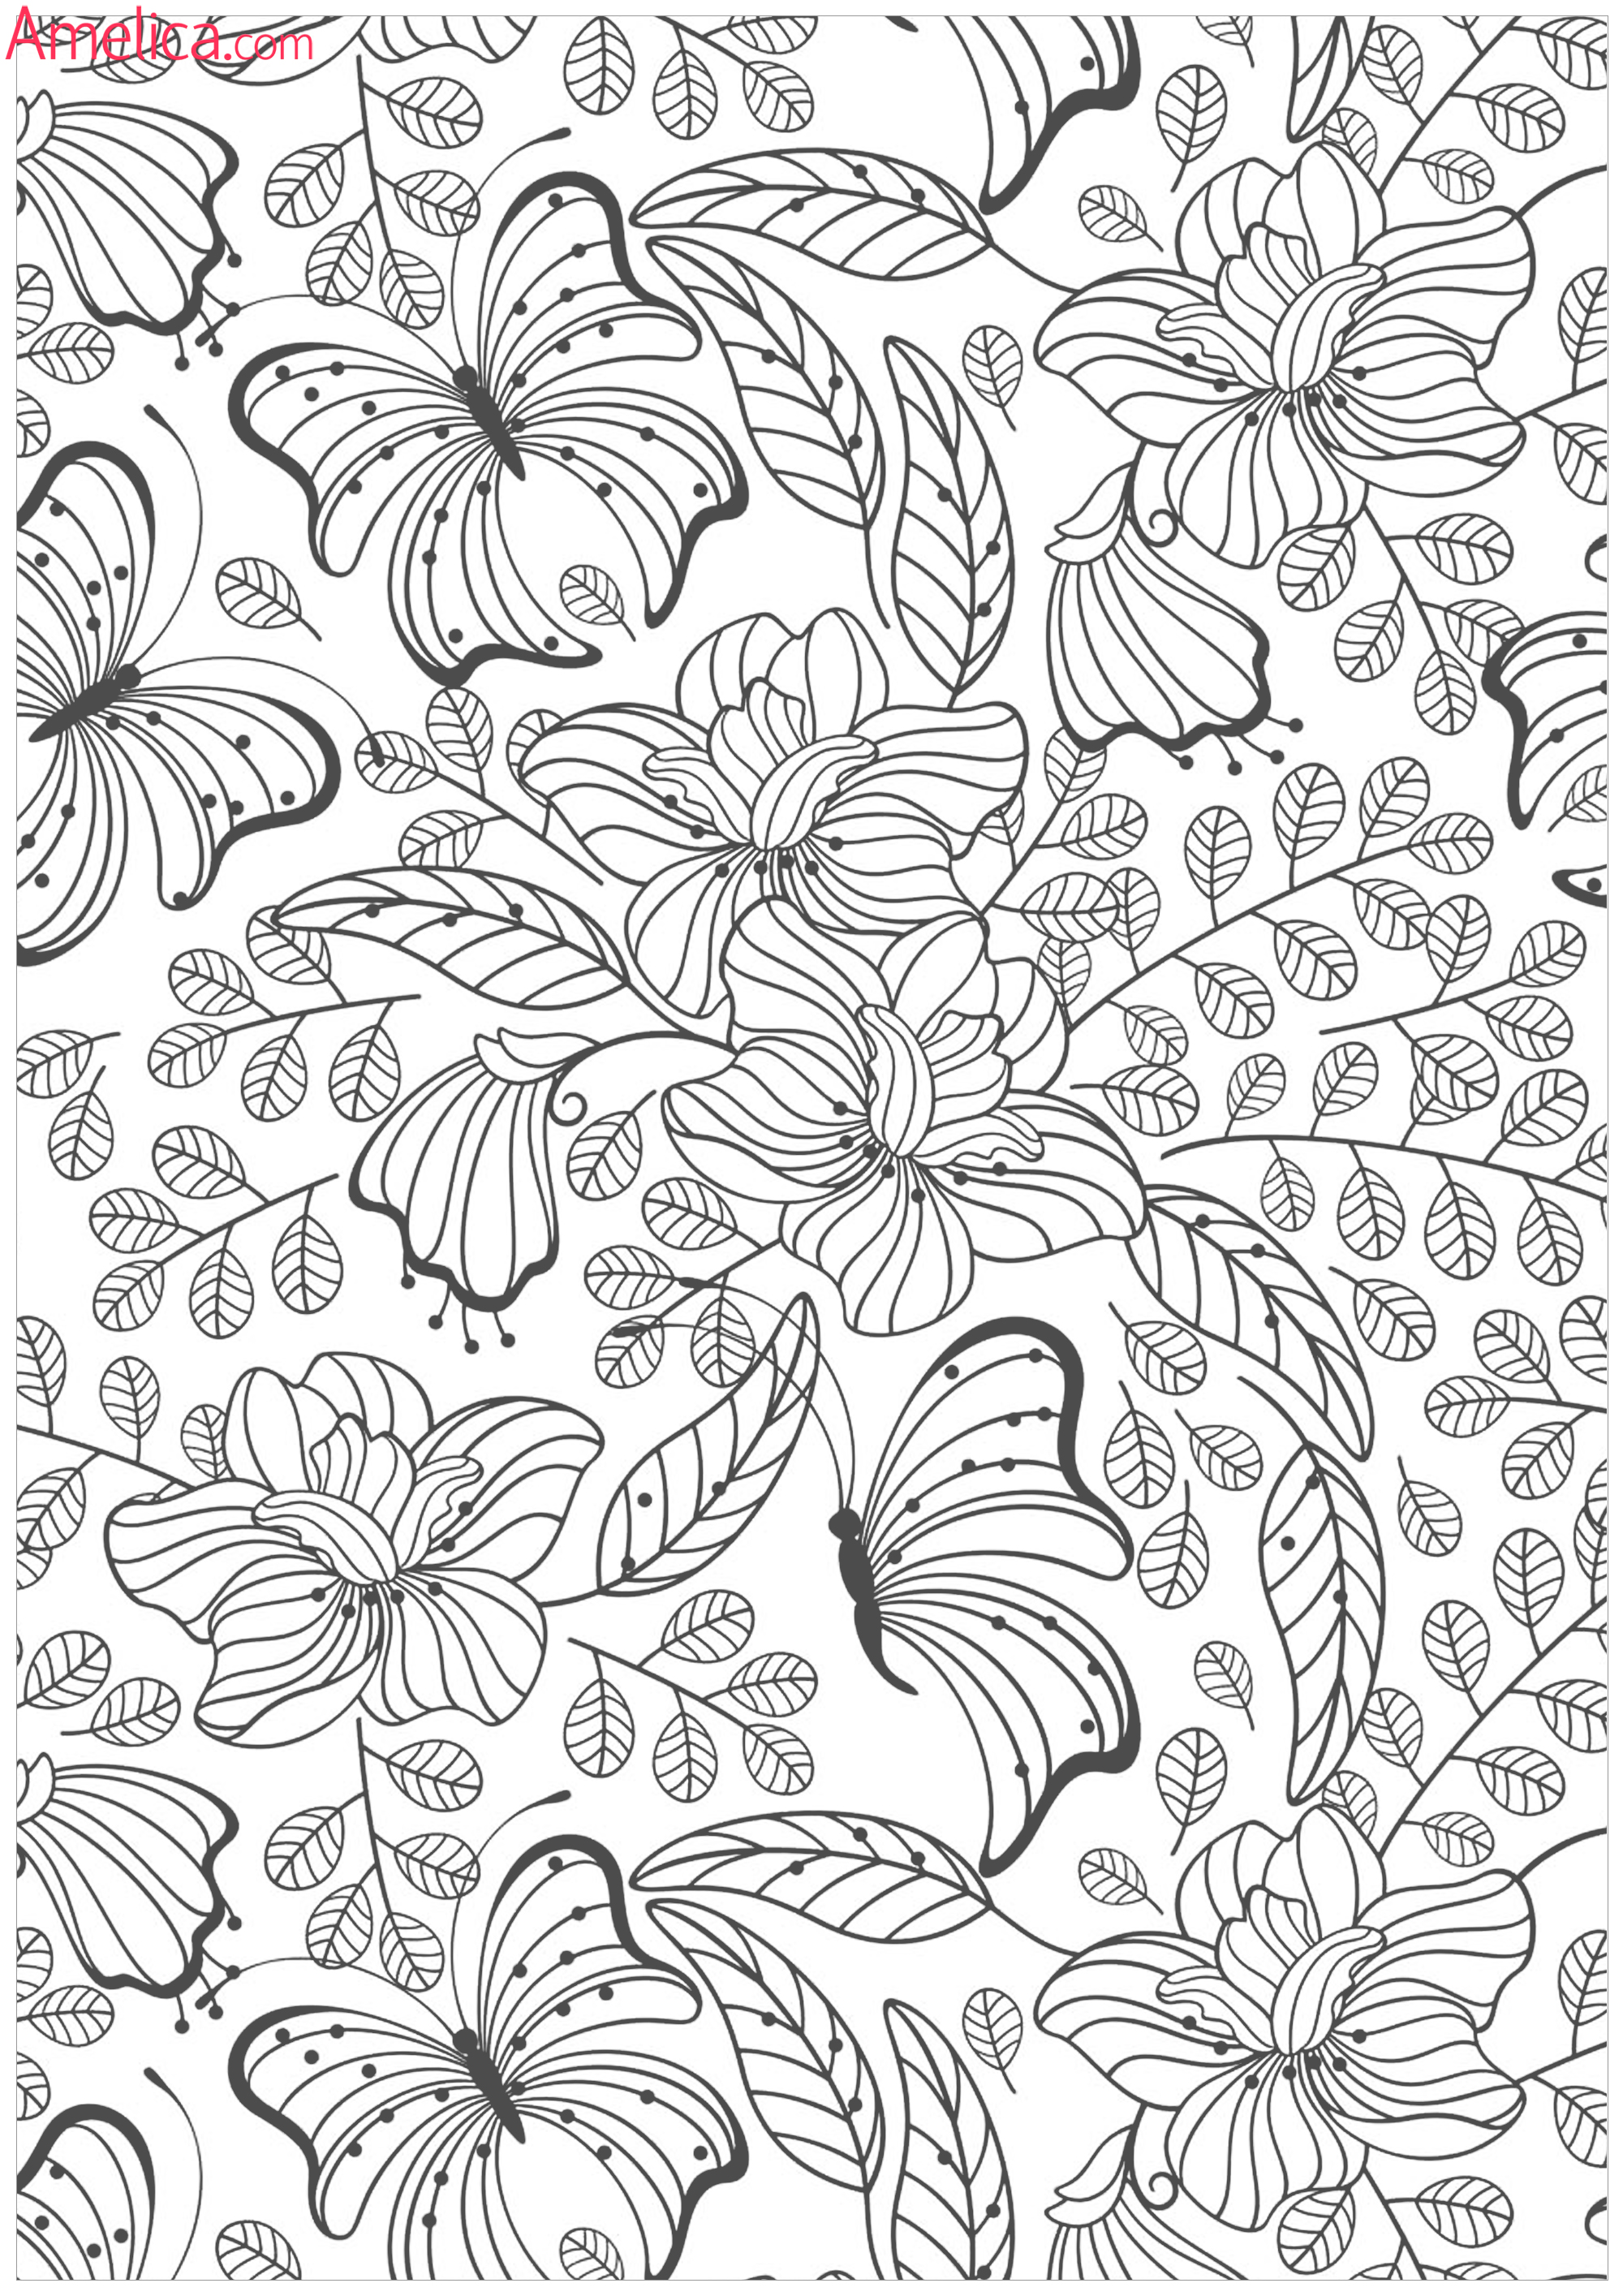 The Botany Coloring Book By Paul Young Pdf Download Free